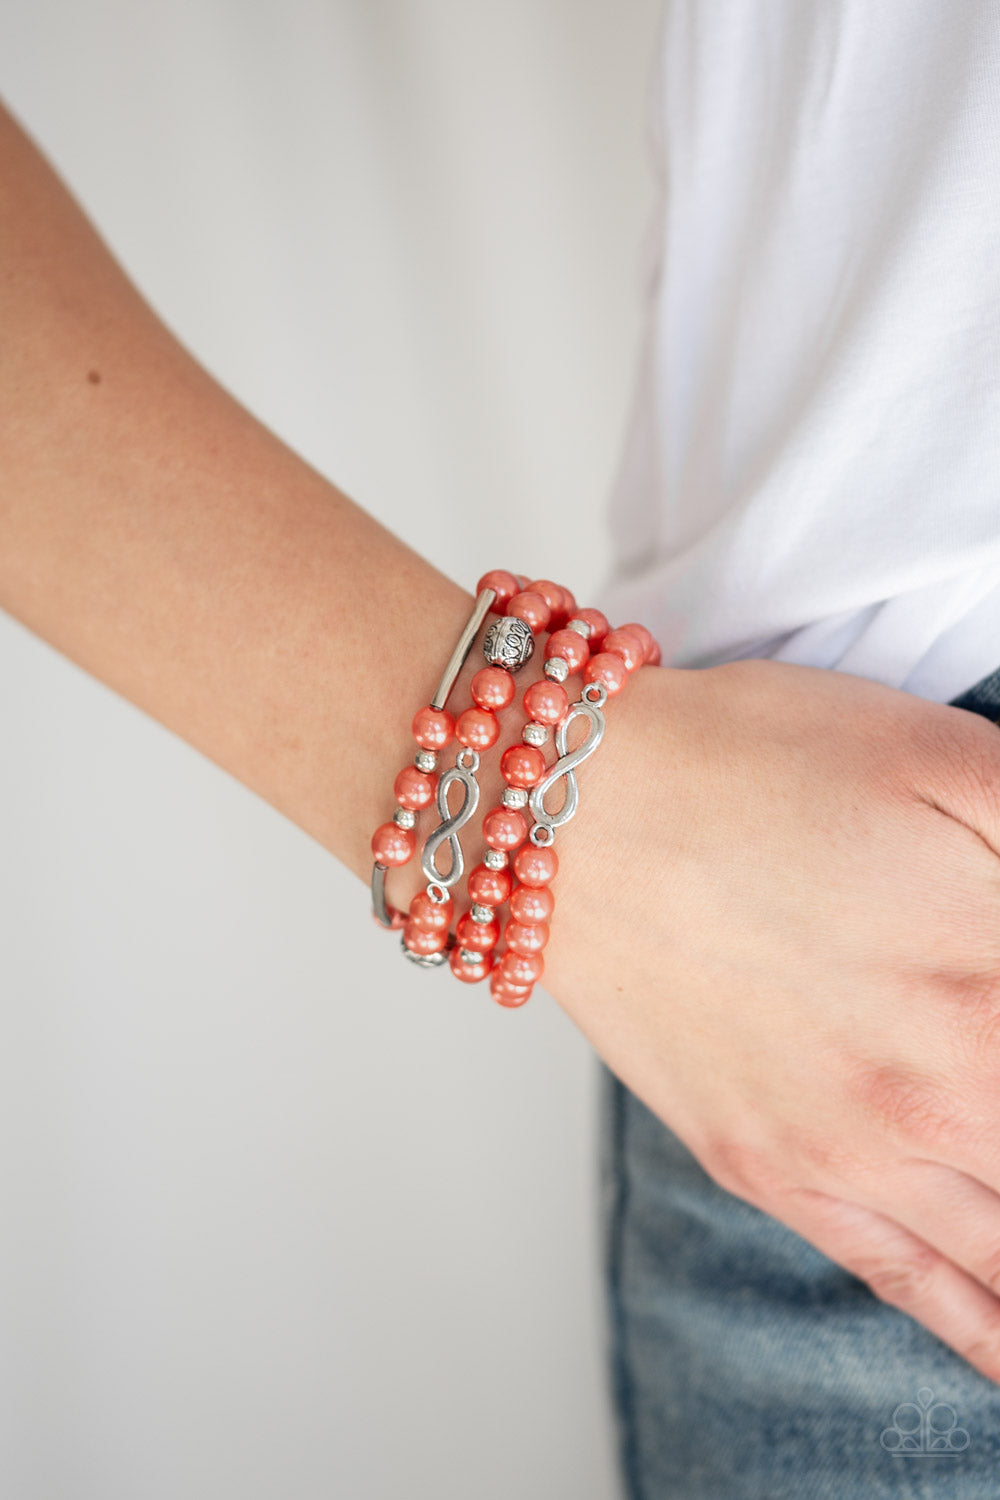 Limitless Luxury - Orange Paparazzi Bracelet - Pink Dragon Jewels